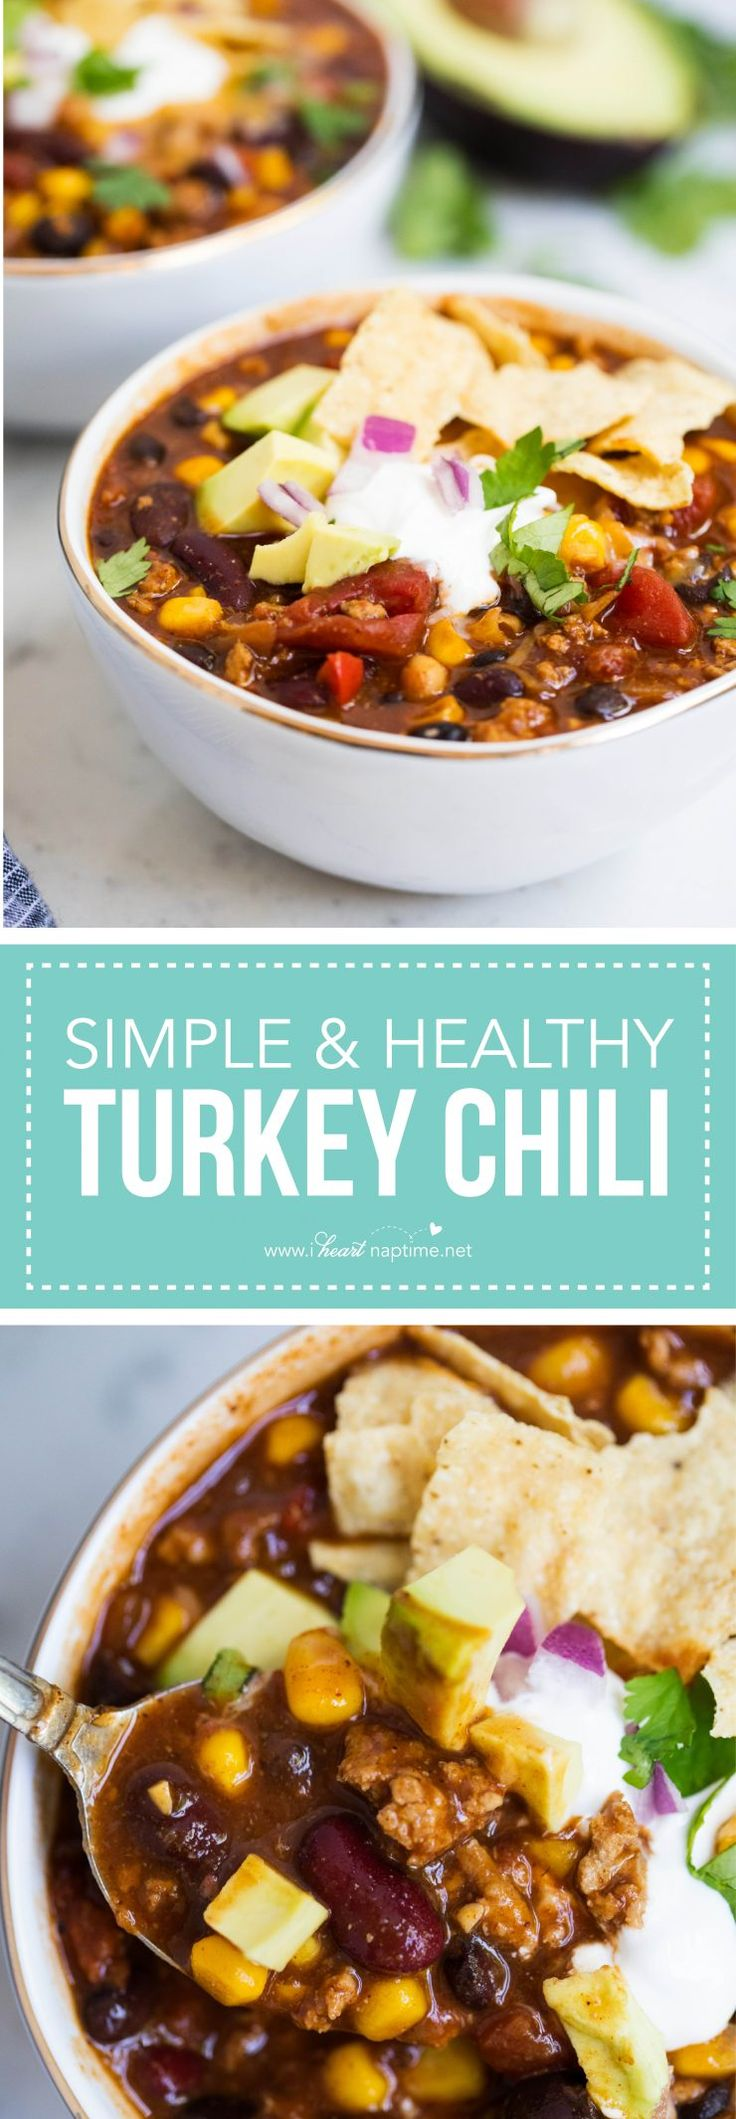 This healthy Turkey Chili recipe makes for the perfect weeknight meal.